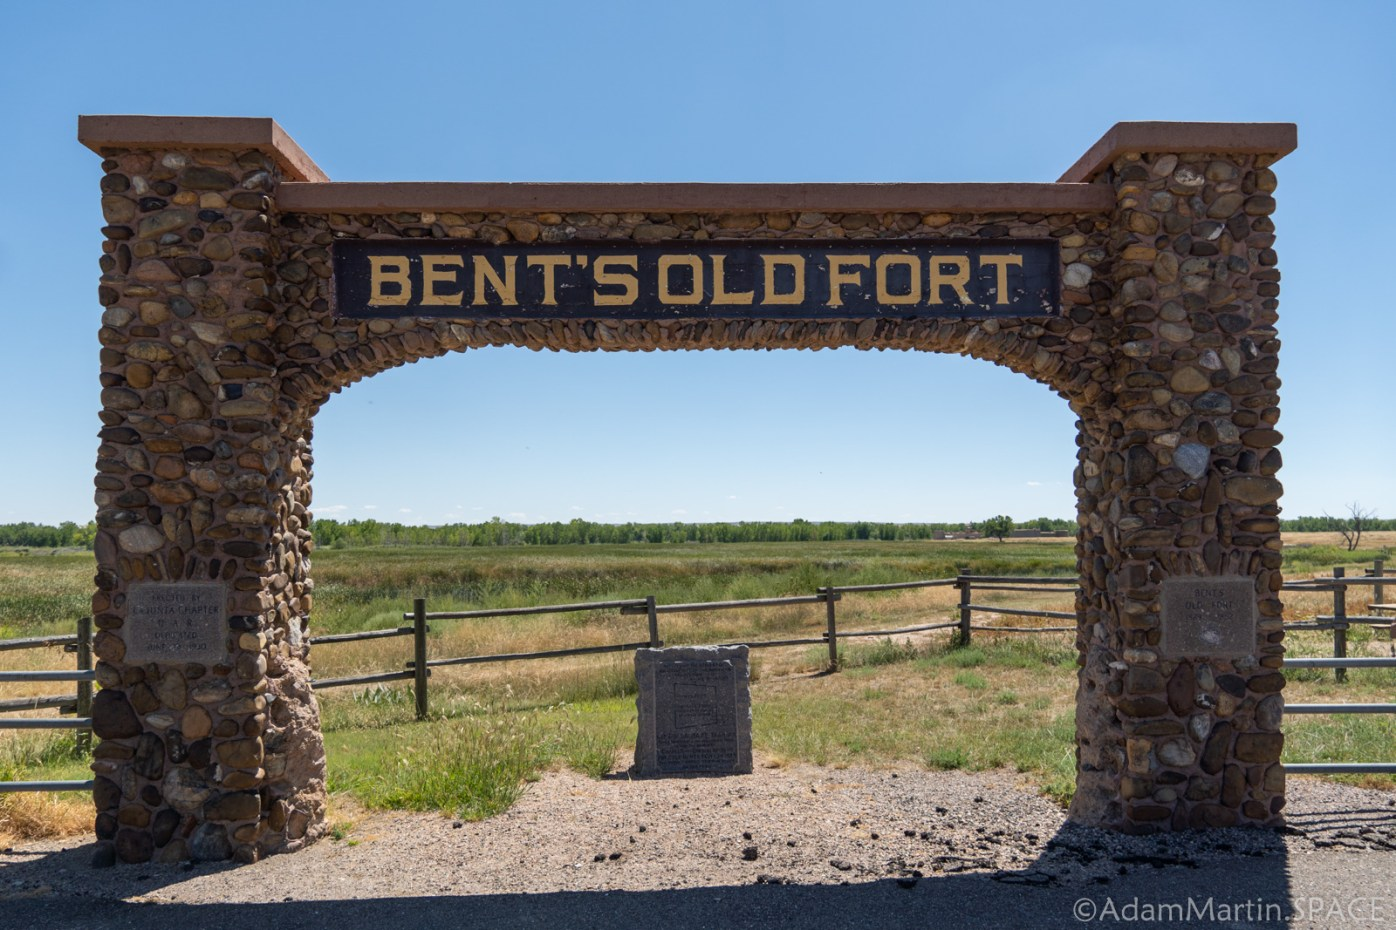 Bent's Old Fort National Historic Site - Stone Arch Entrance Sign